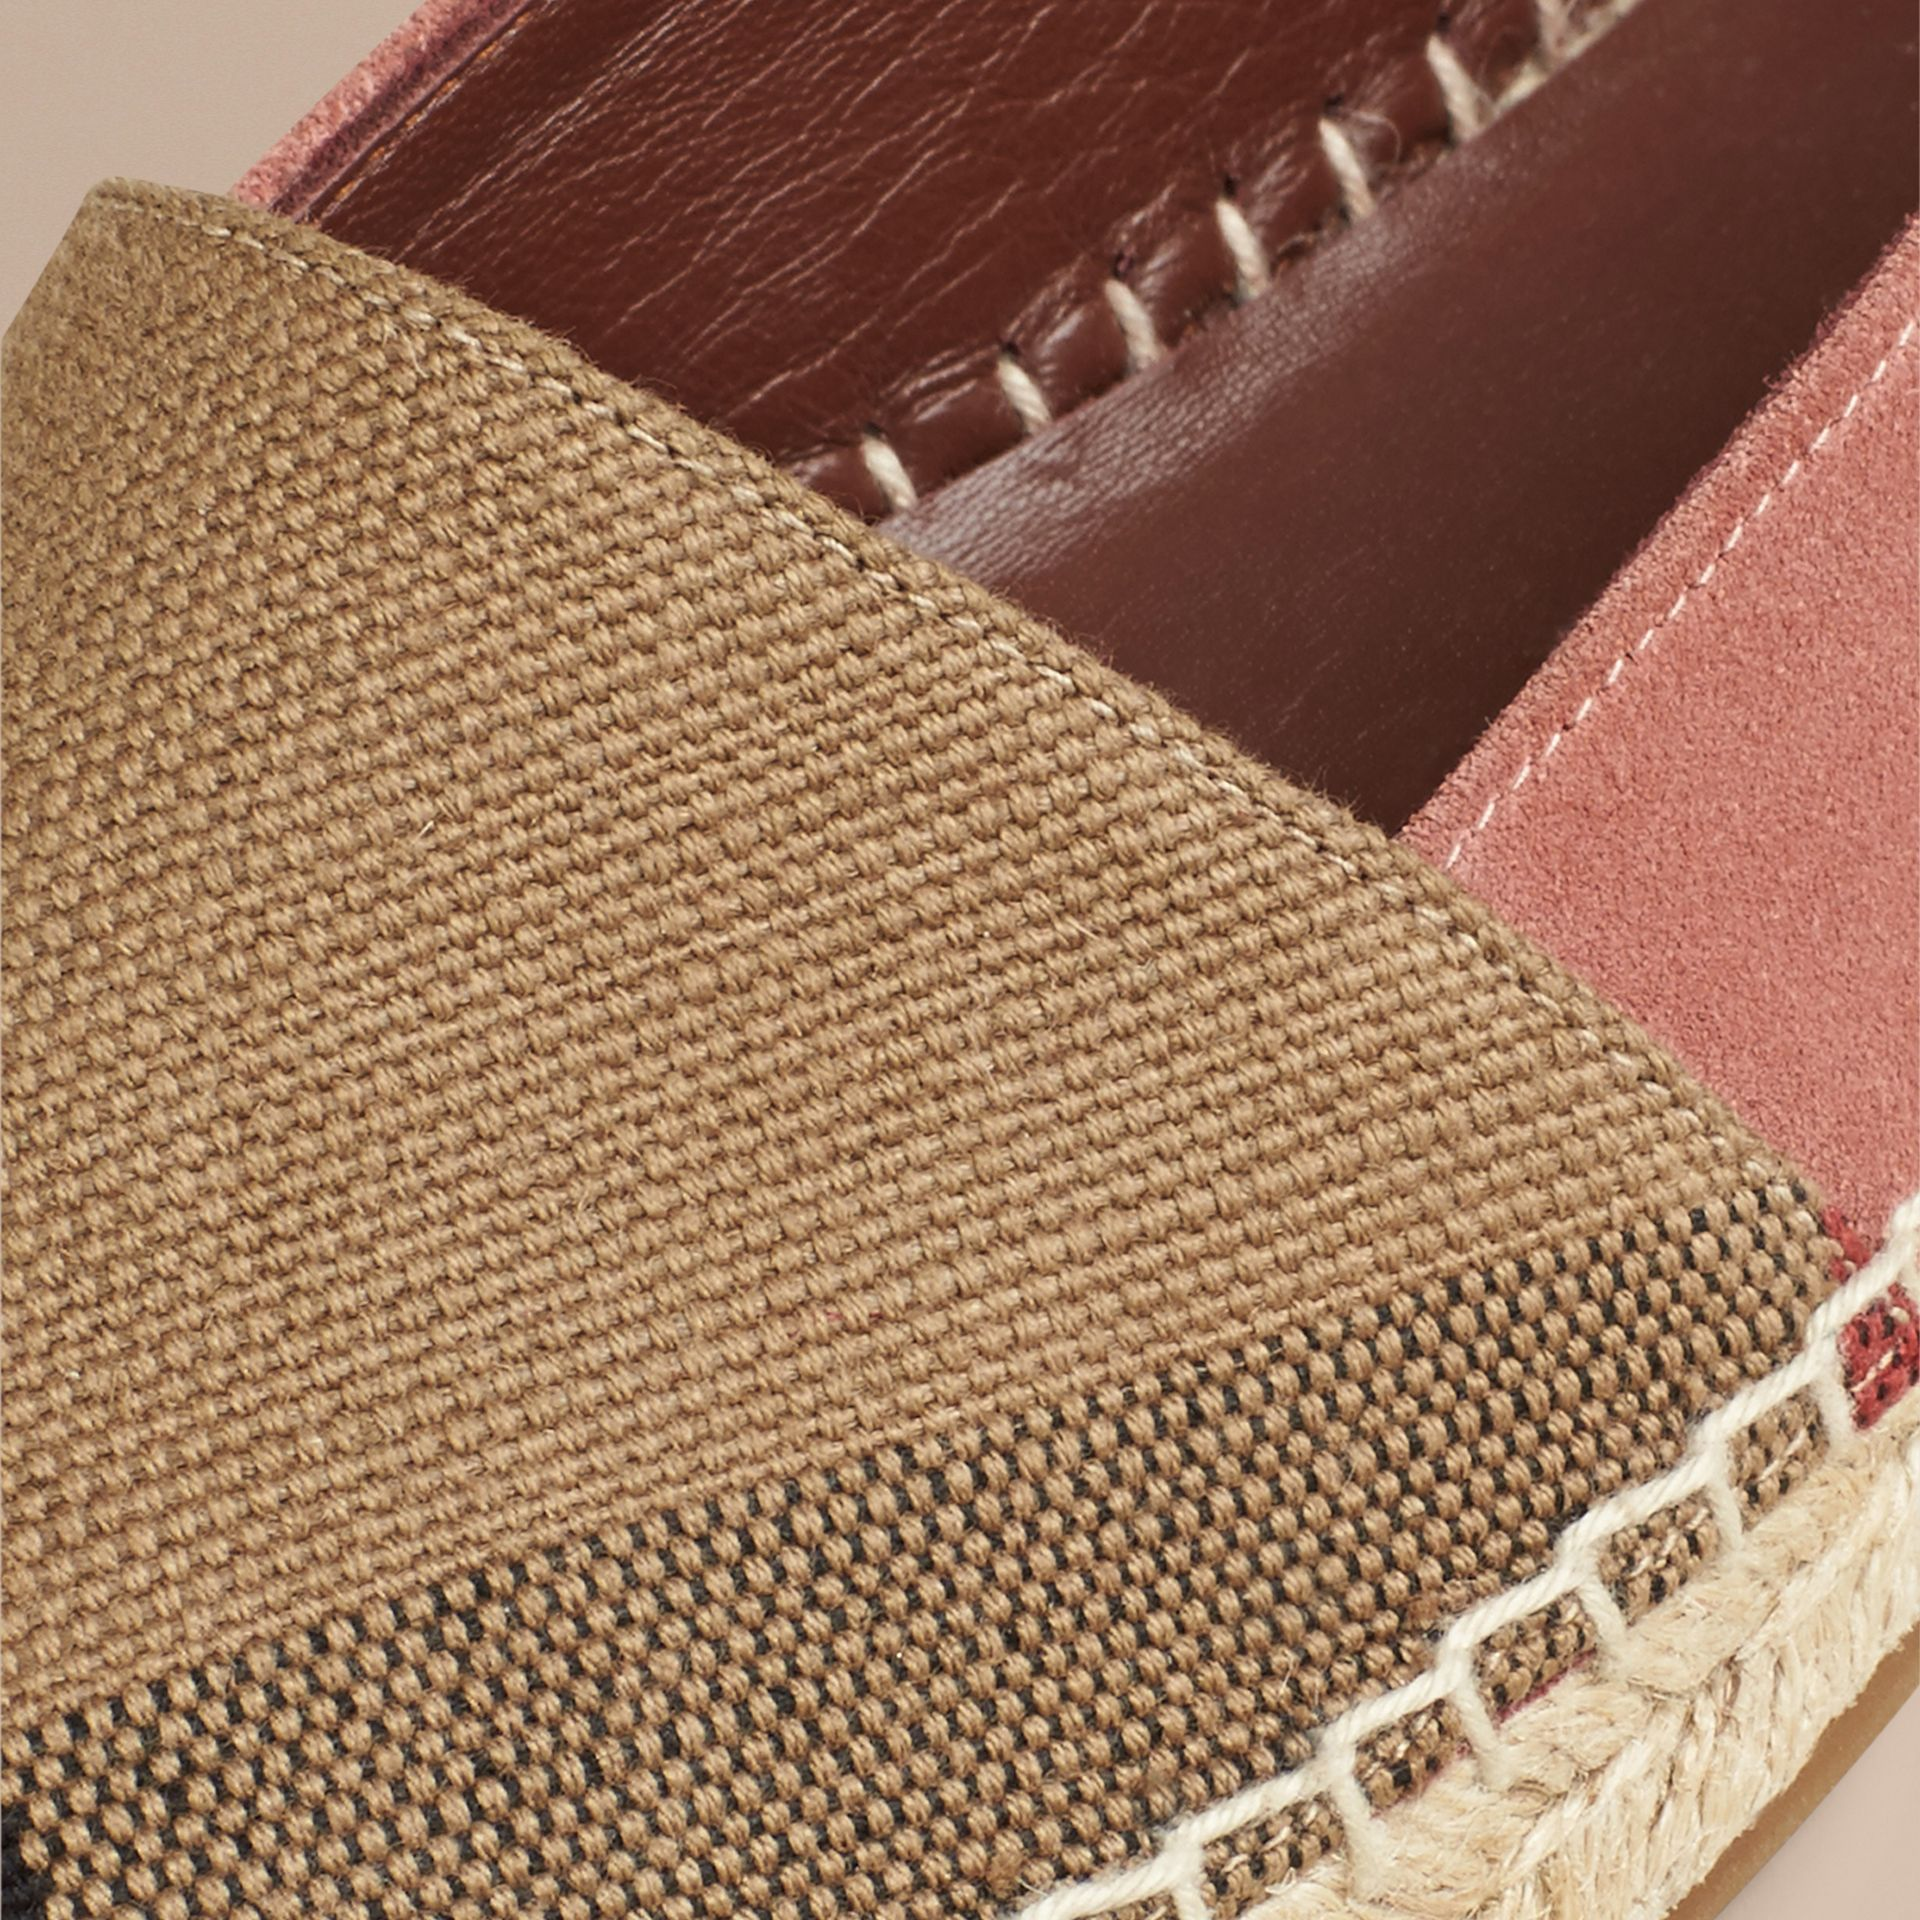 Pale russet Check Jute Cotton and Suede Espadrilles Pale Russet - gallery image 2